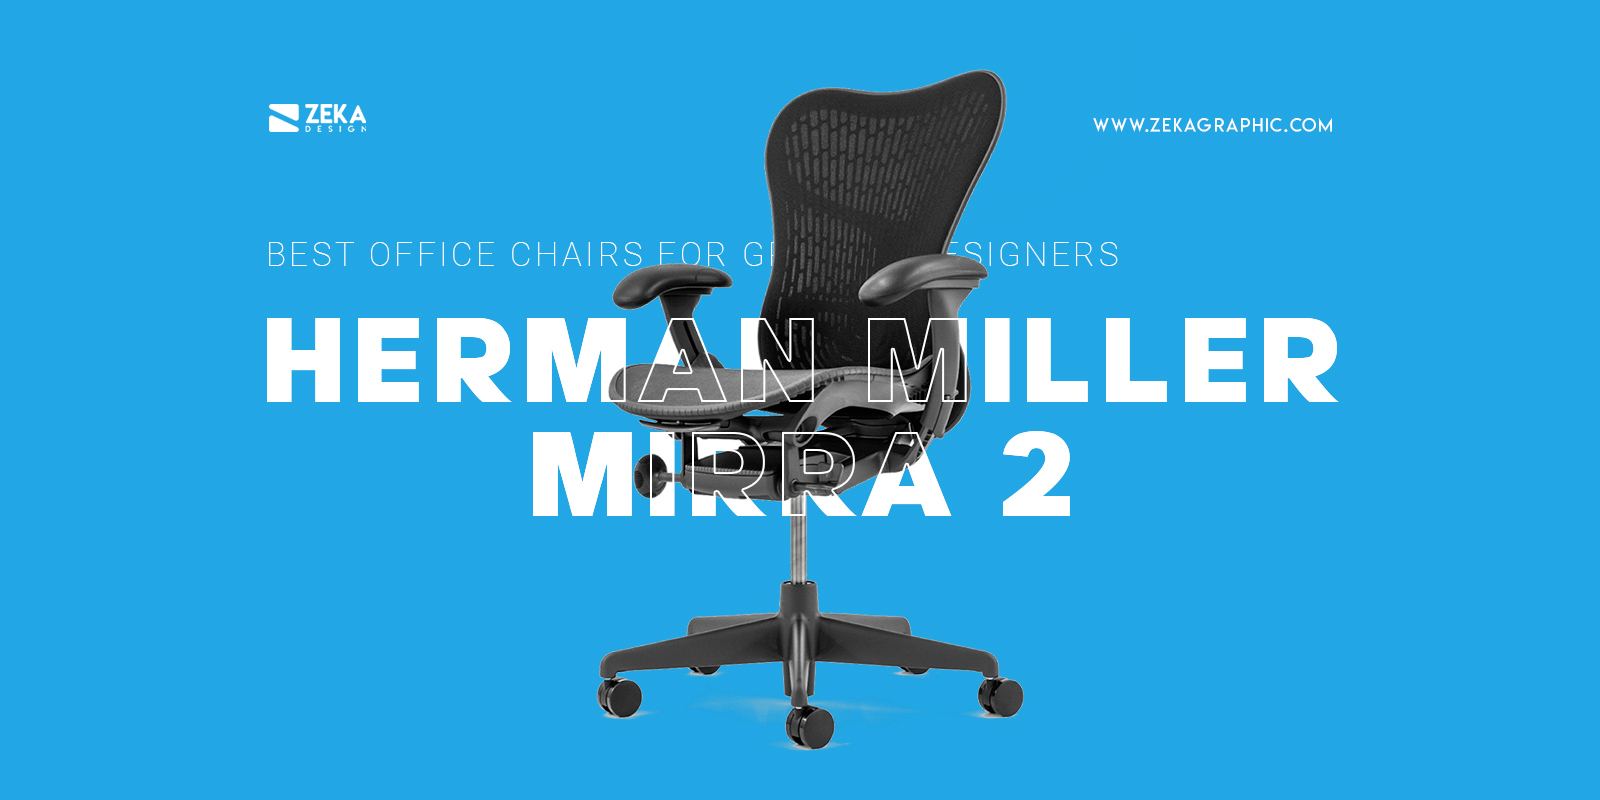 Herman Miller Mirra 2 Best Office Chair For Graphic Designers and Creatives